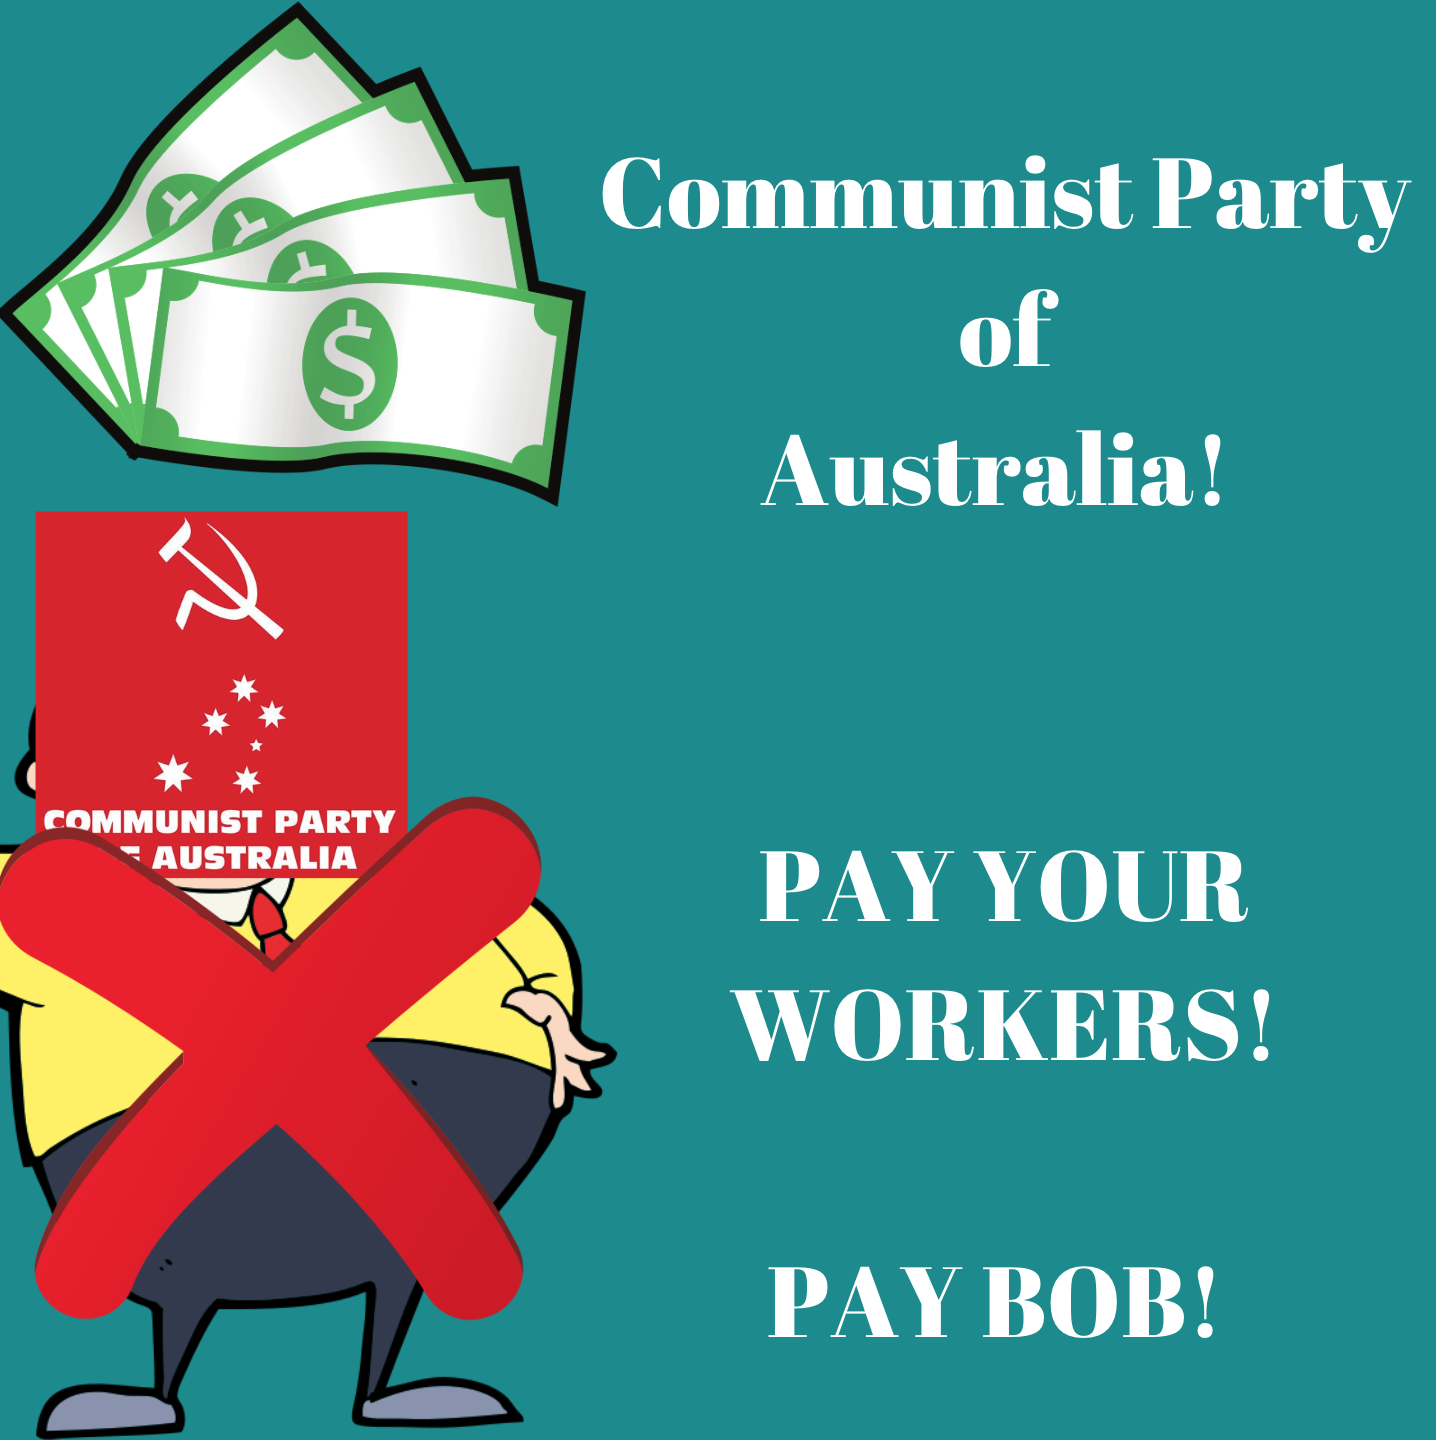 pay your workers Pay Bob!